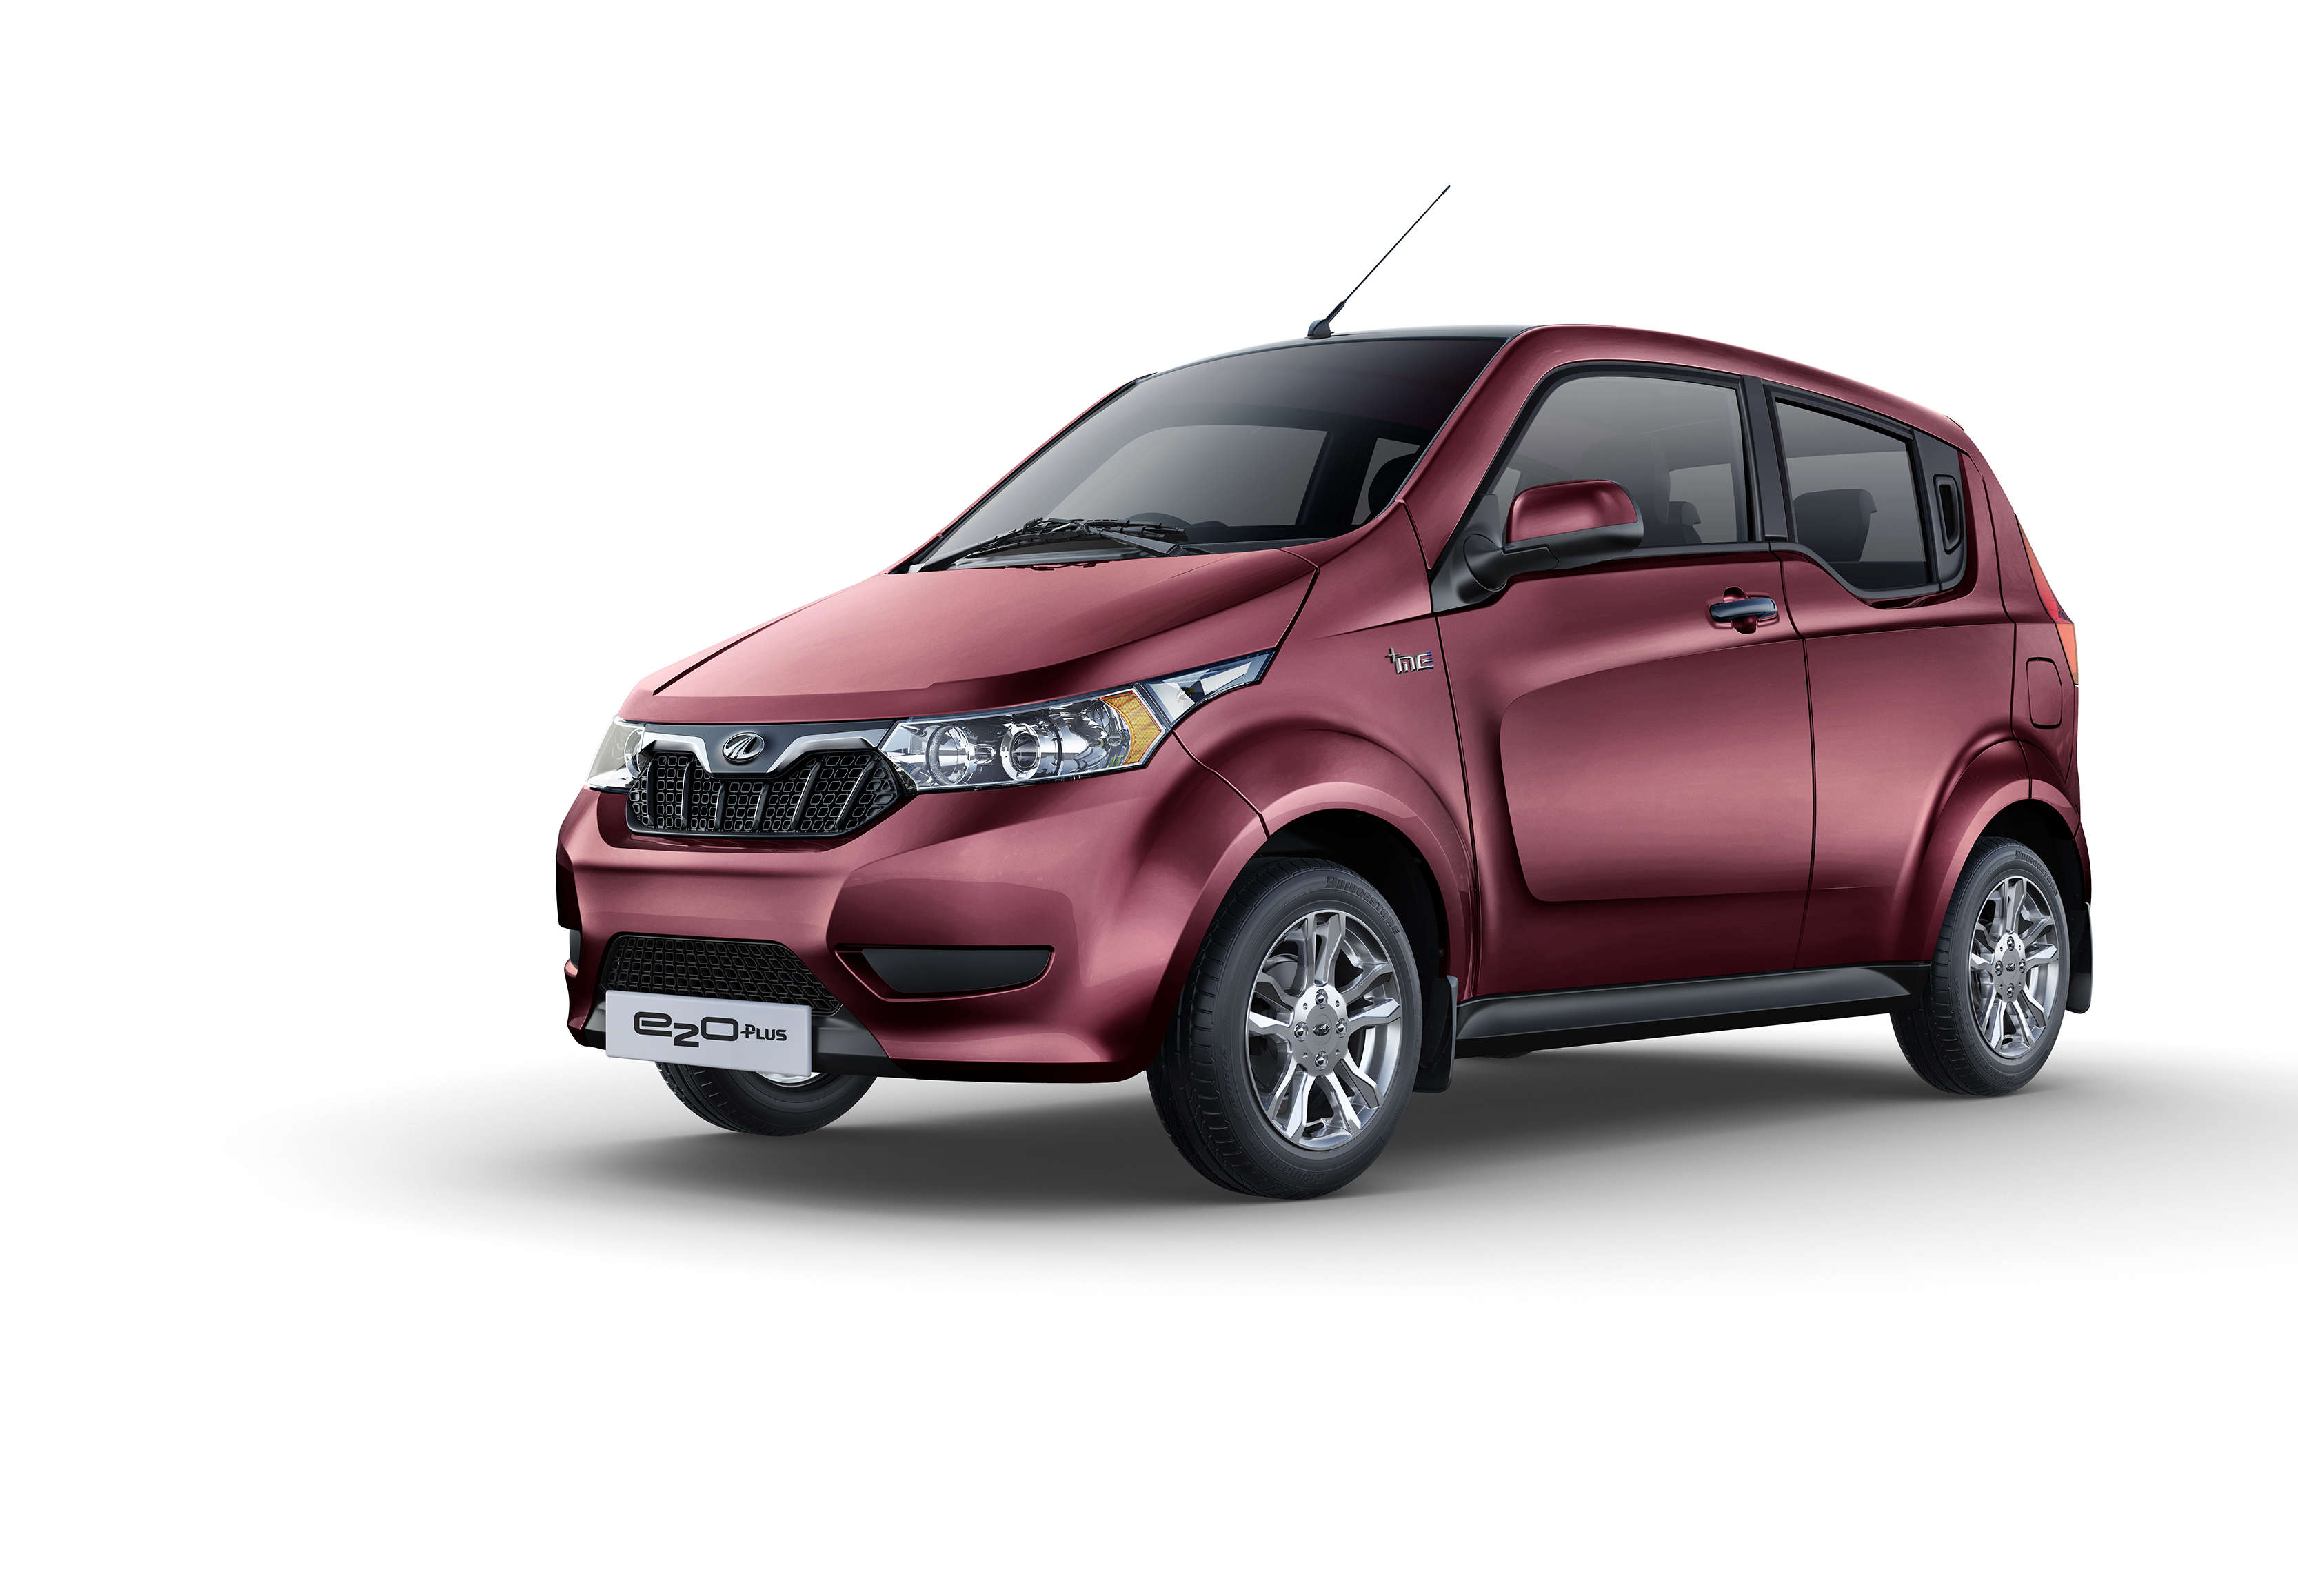 Mahindra Mahindra Drives In Electric Citysmart Car Auto